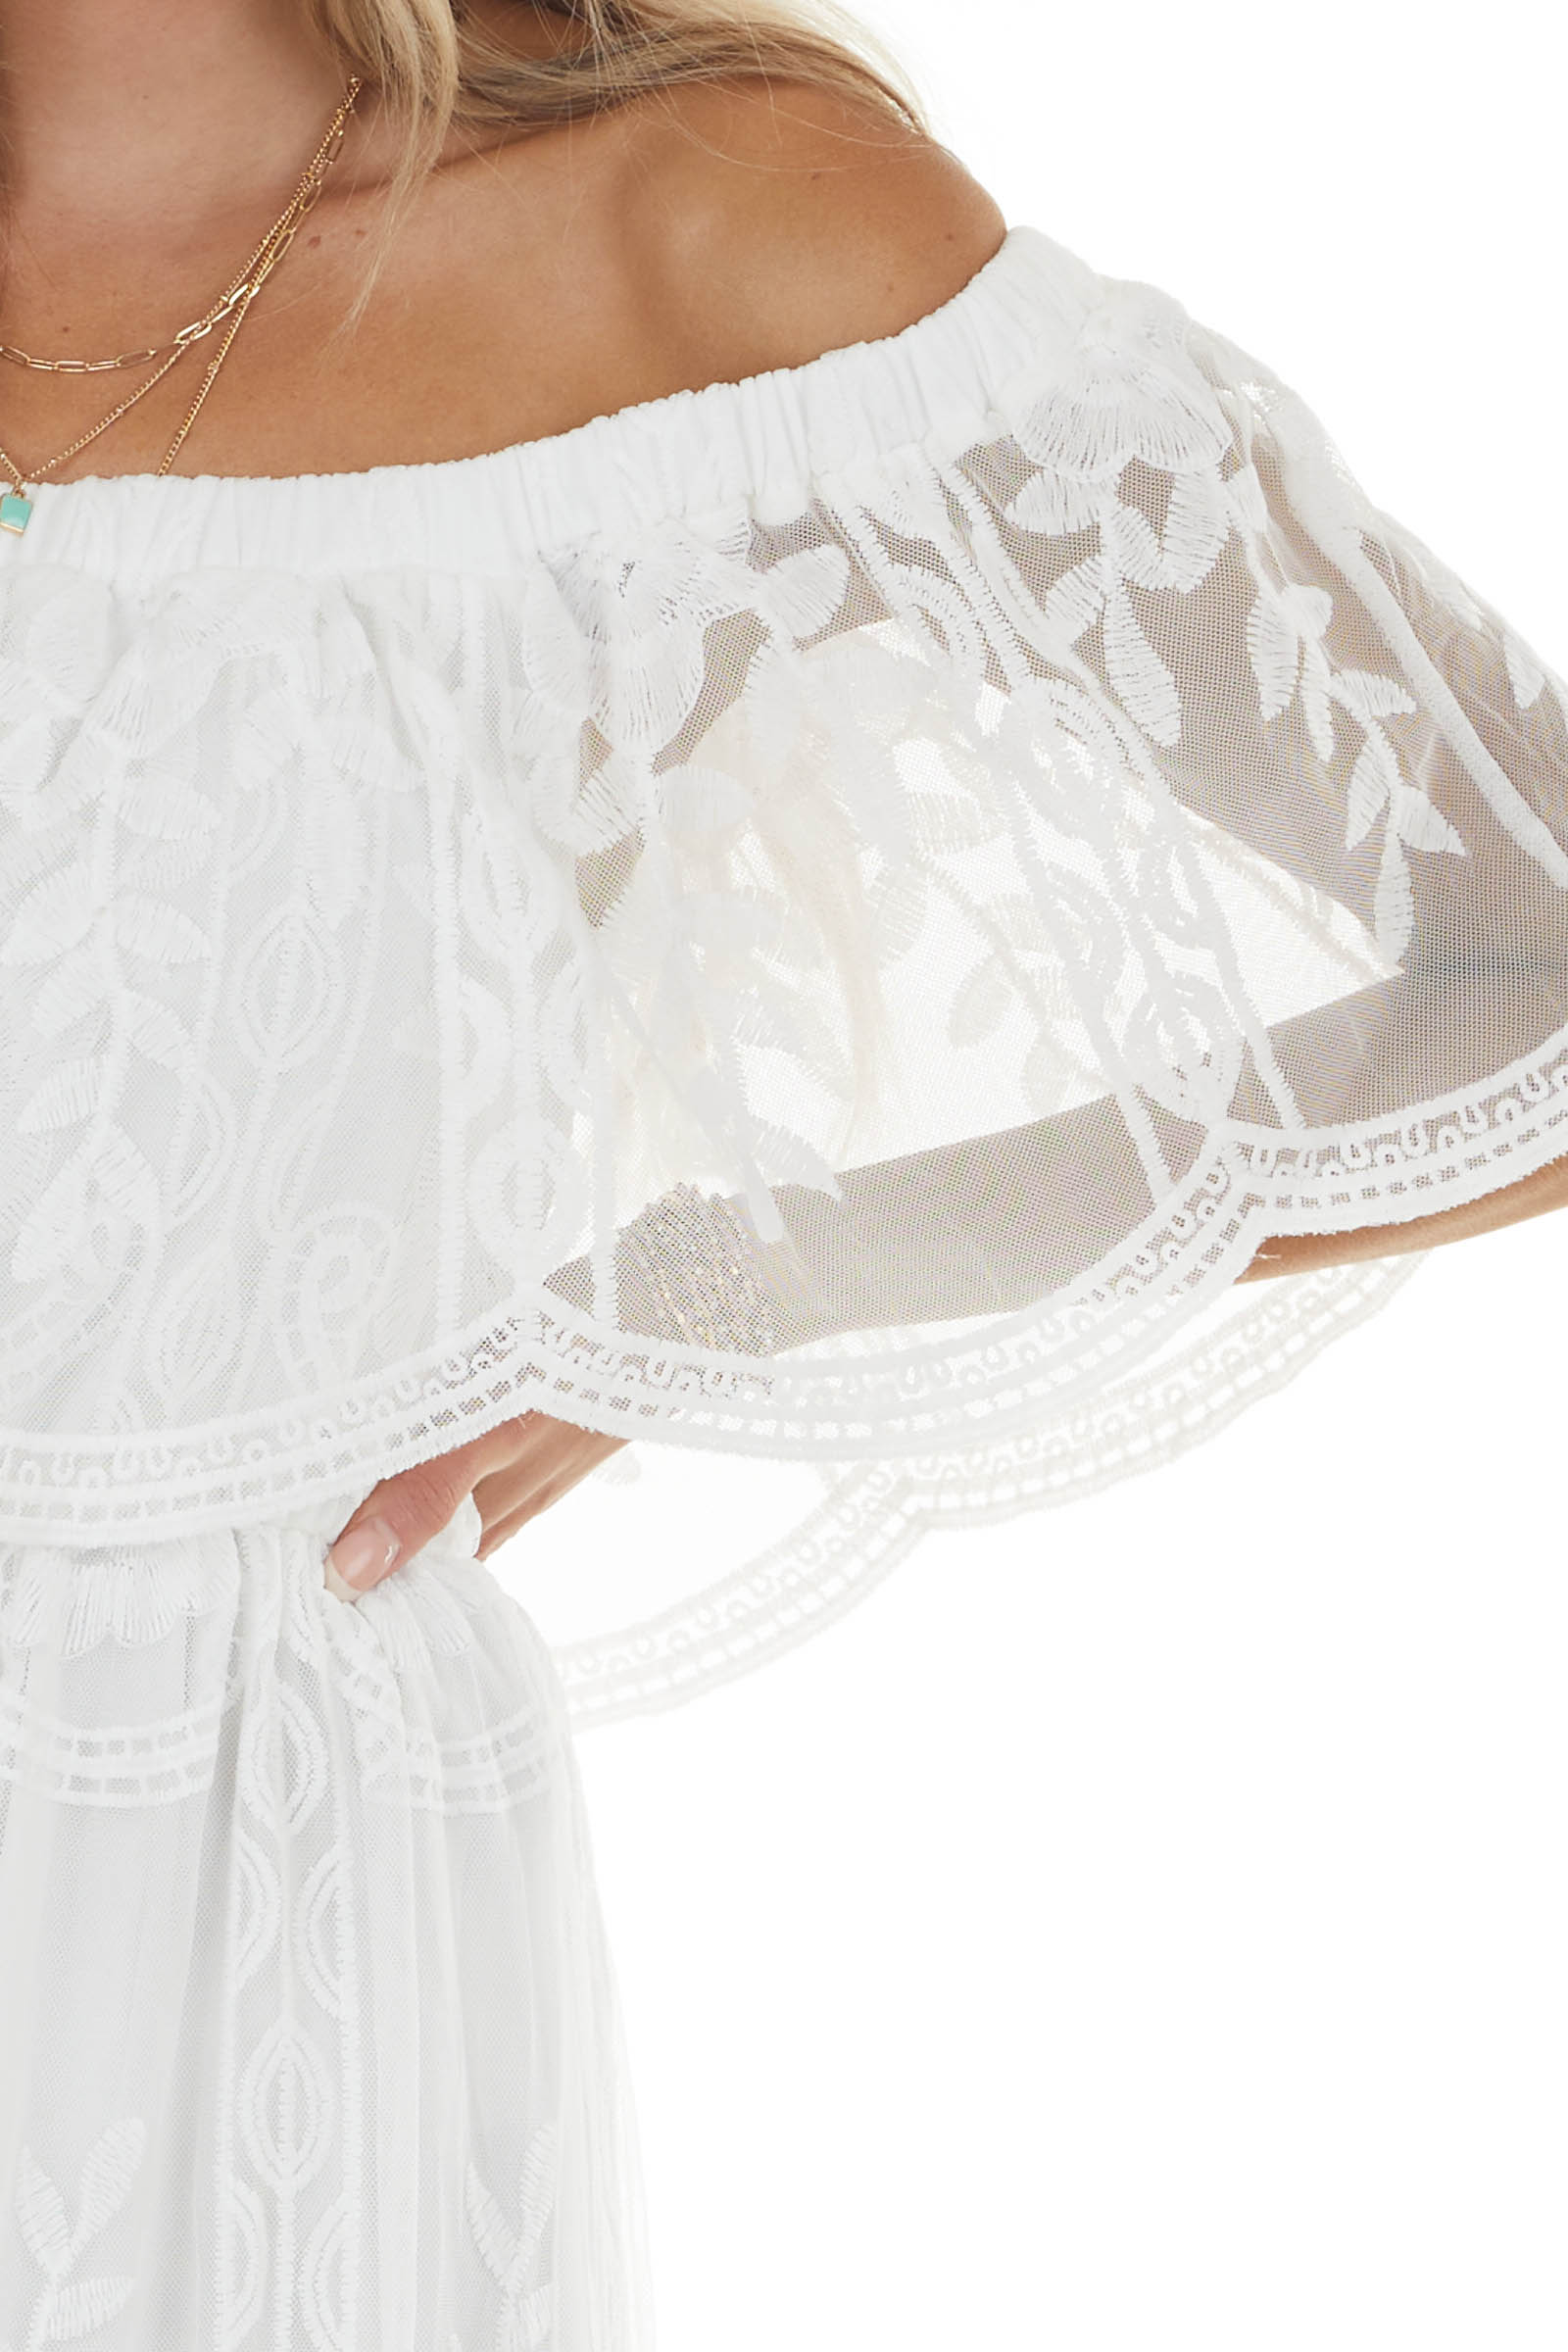 Off White Off Shoulder Floral Lace Overlay Maxi Dress